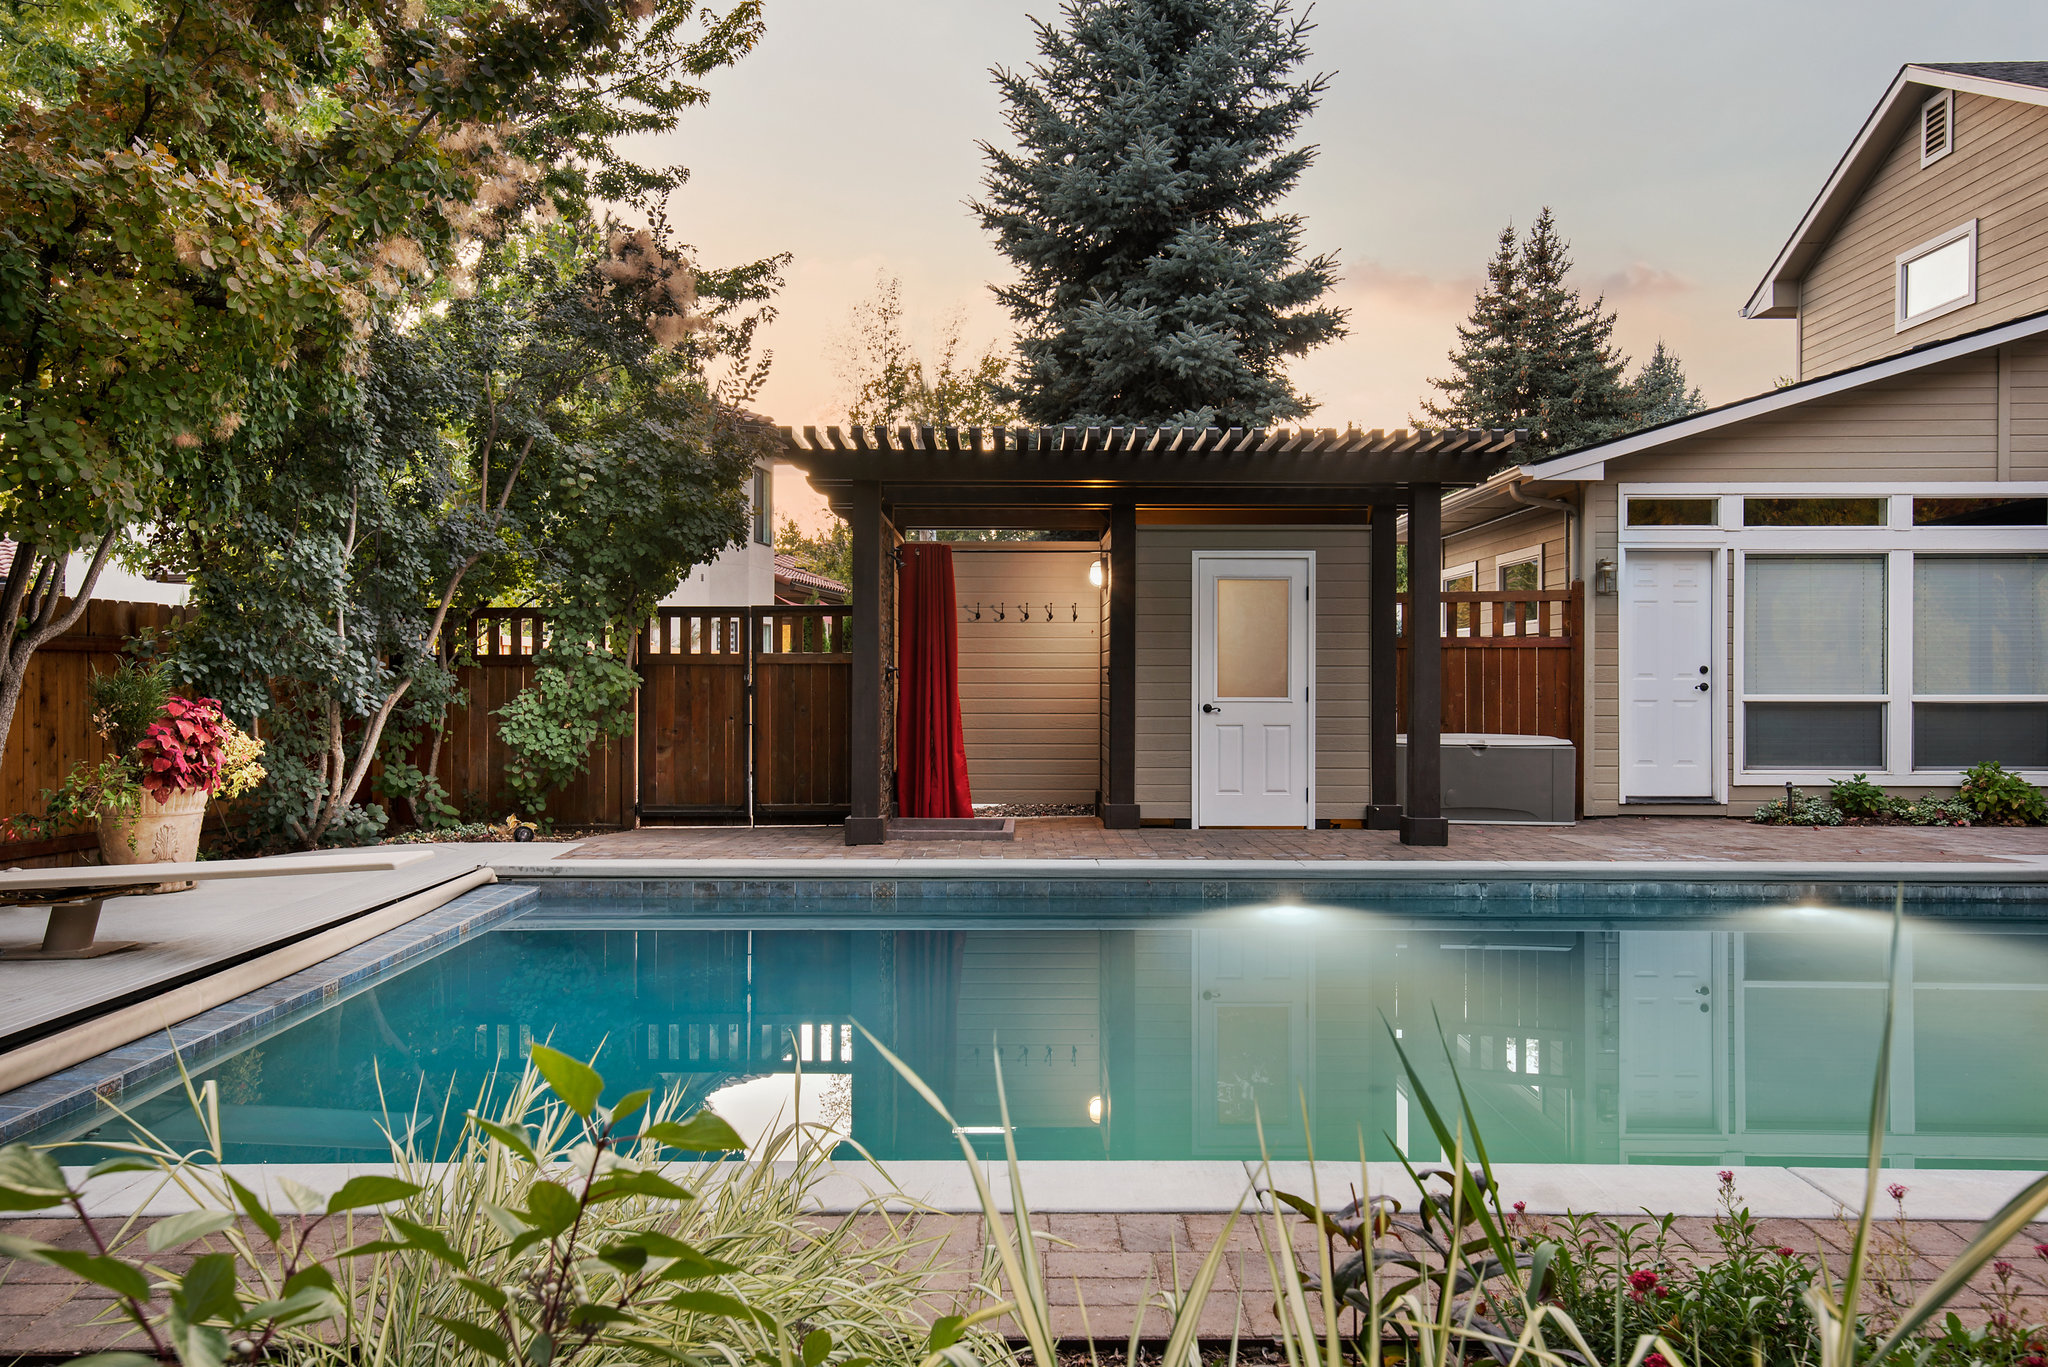 Holden Lane Pool/Spa Feature - 2 | The Garden Artist Boise, ID